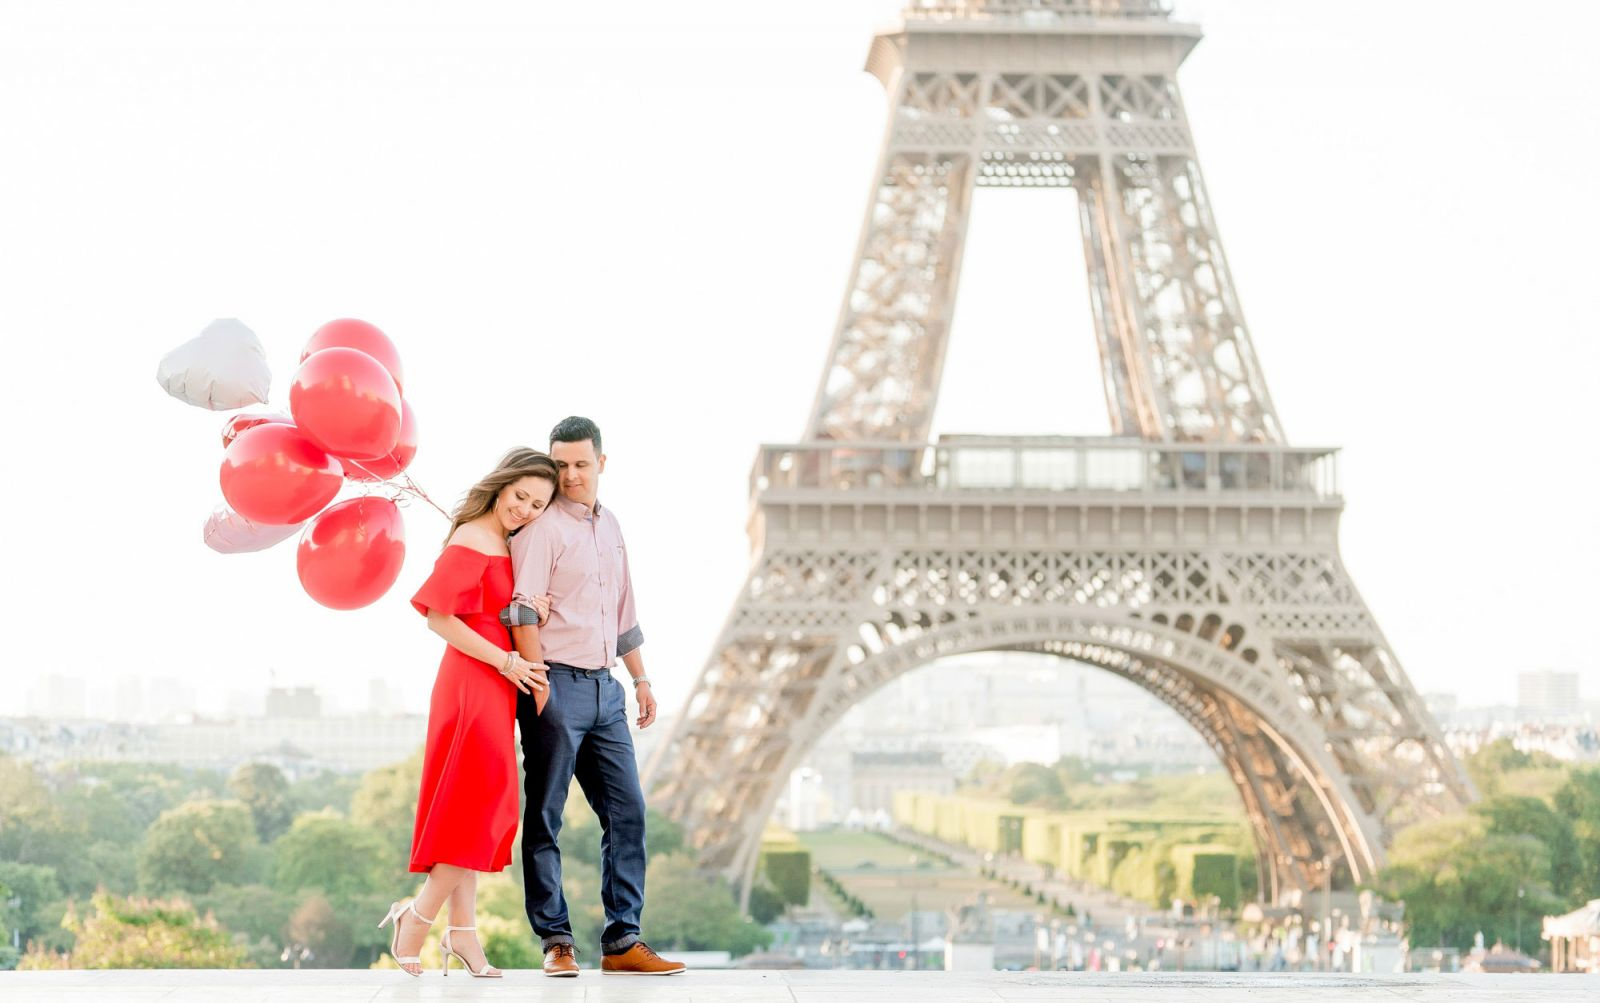 couple with red balloons at eiffel tower